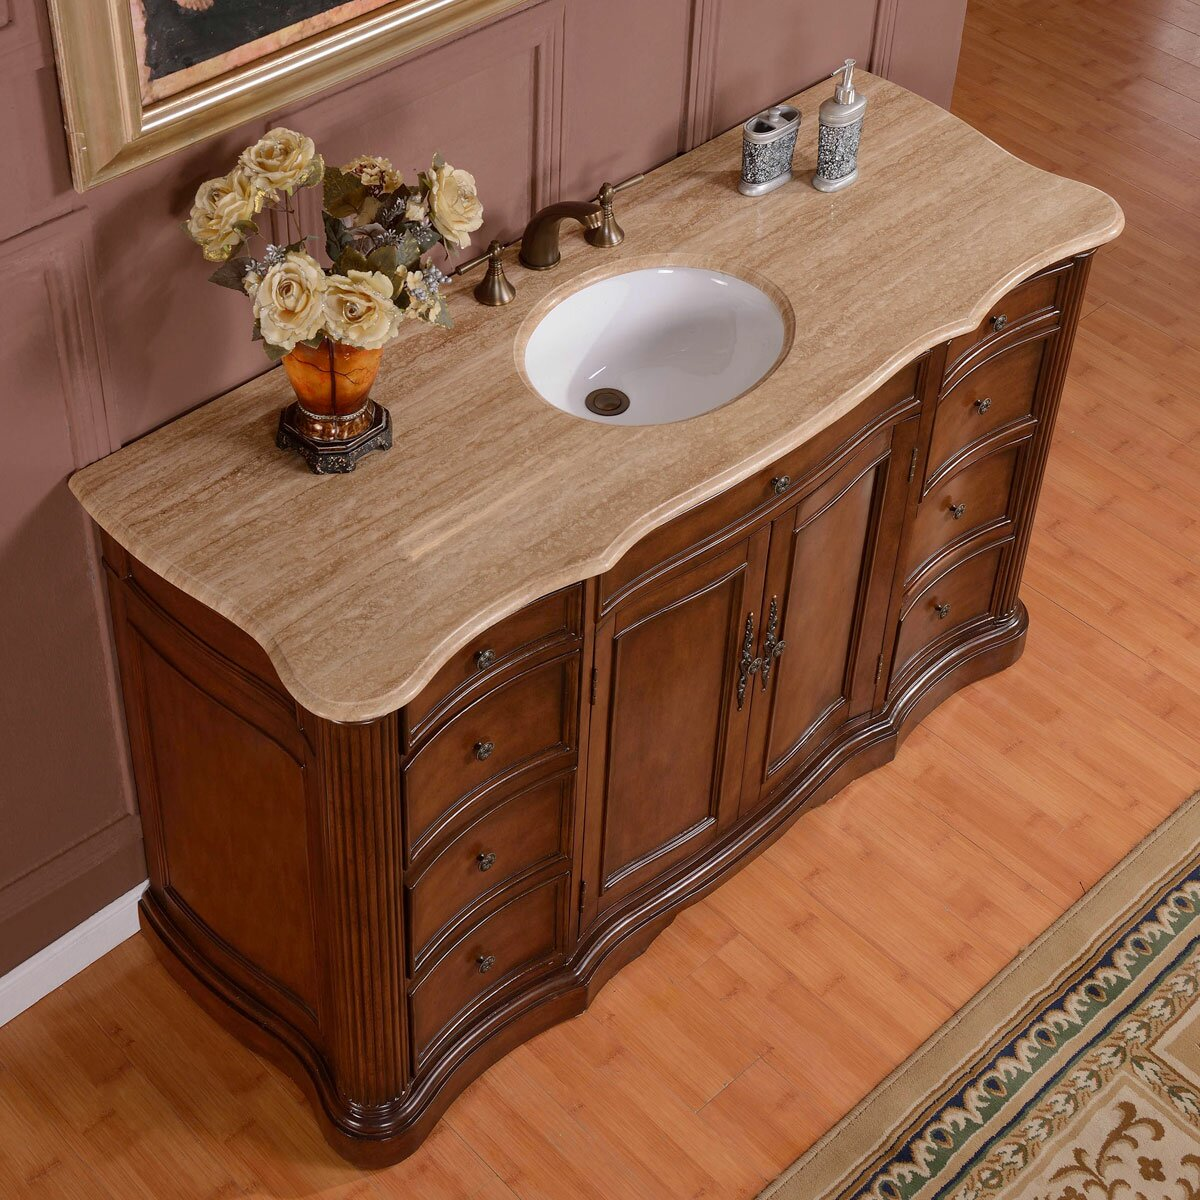 Ensemble Vanite Armoire : Silkroad exclusive quot sink cabinet bathroom vanity set